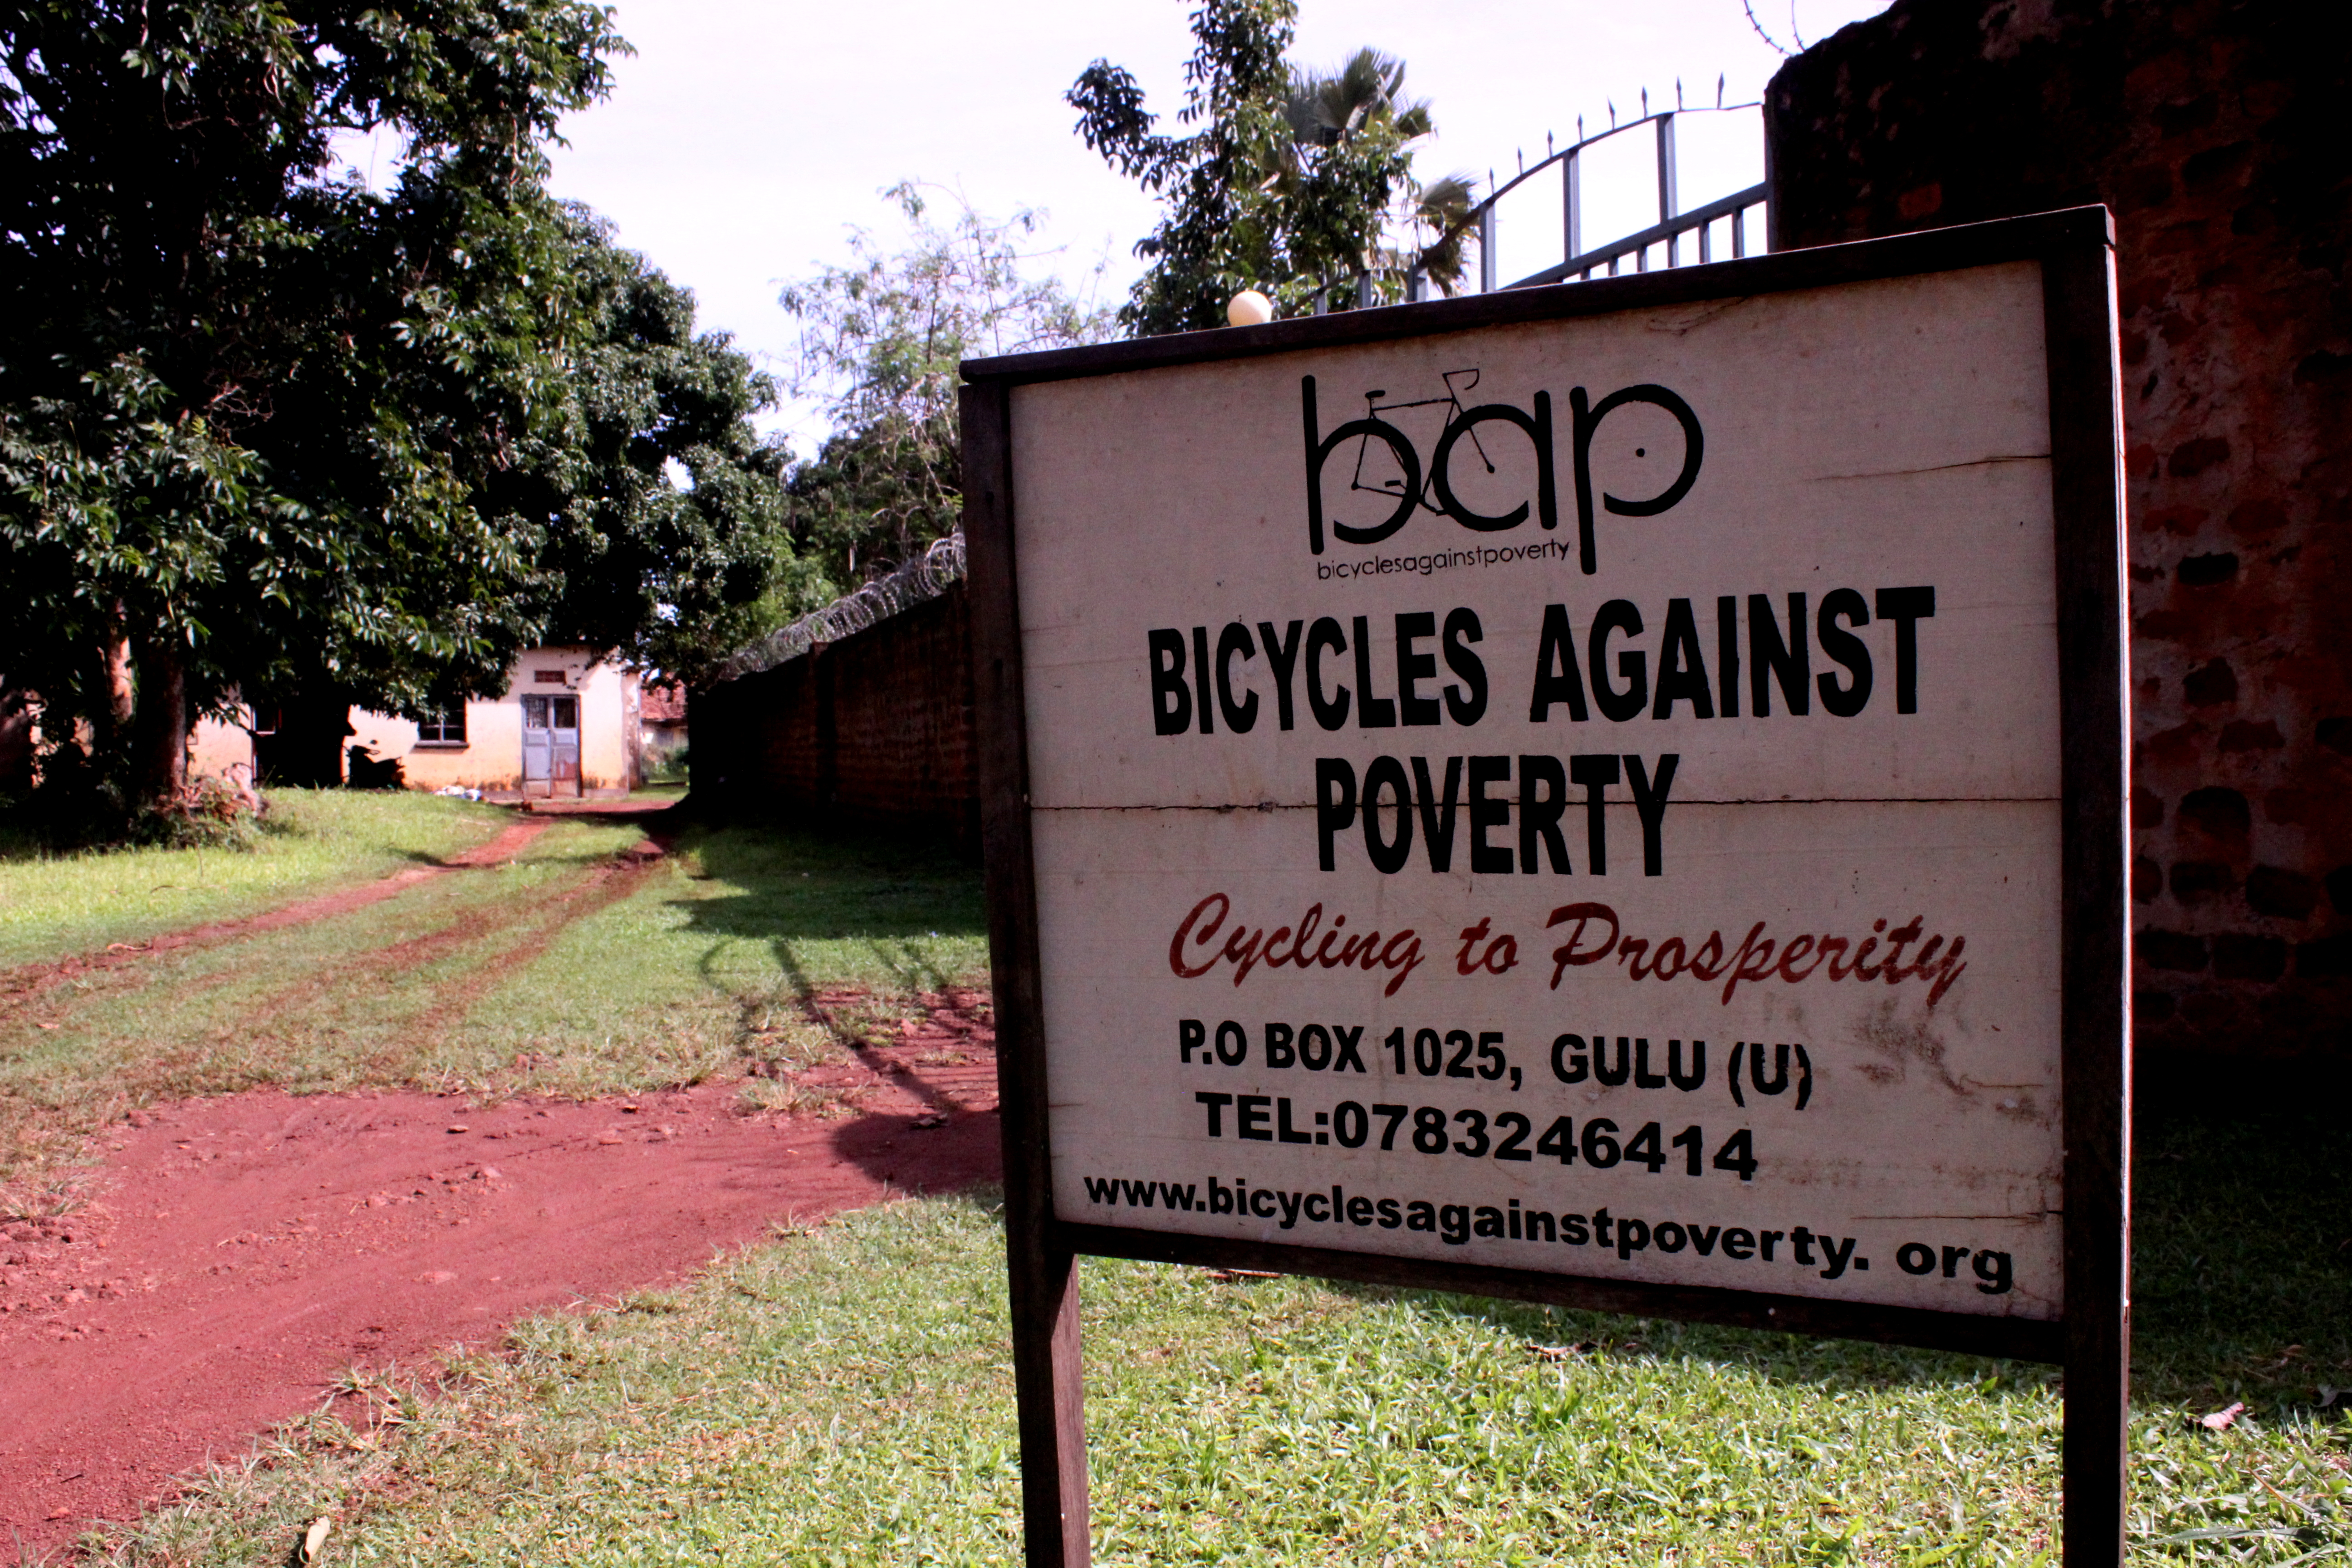 Caption: Bicycles Against Poverty, Credit: Travis Sanderson